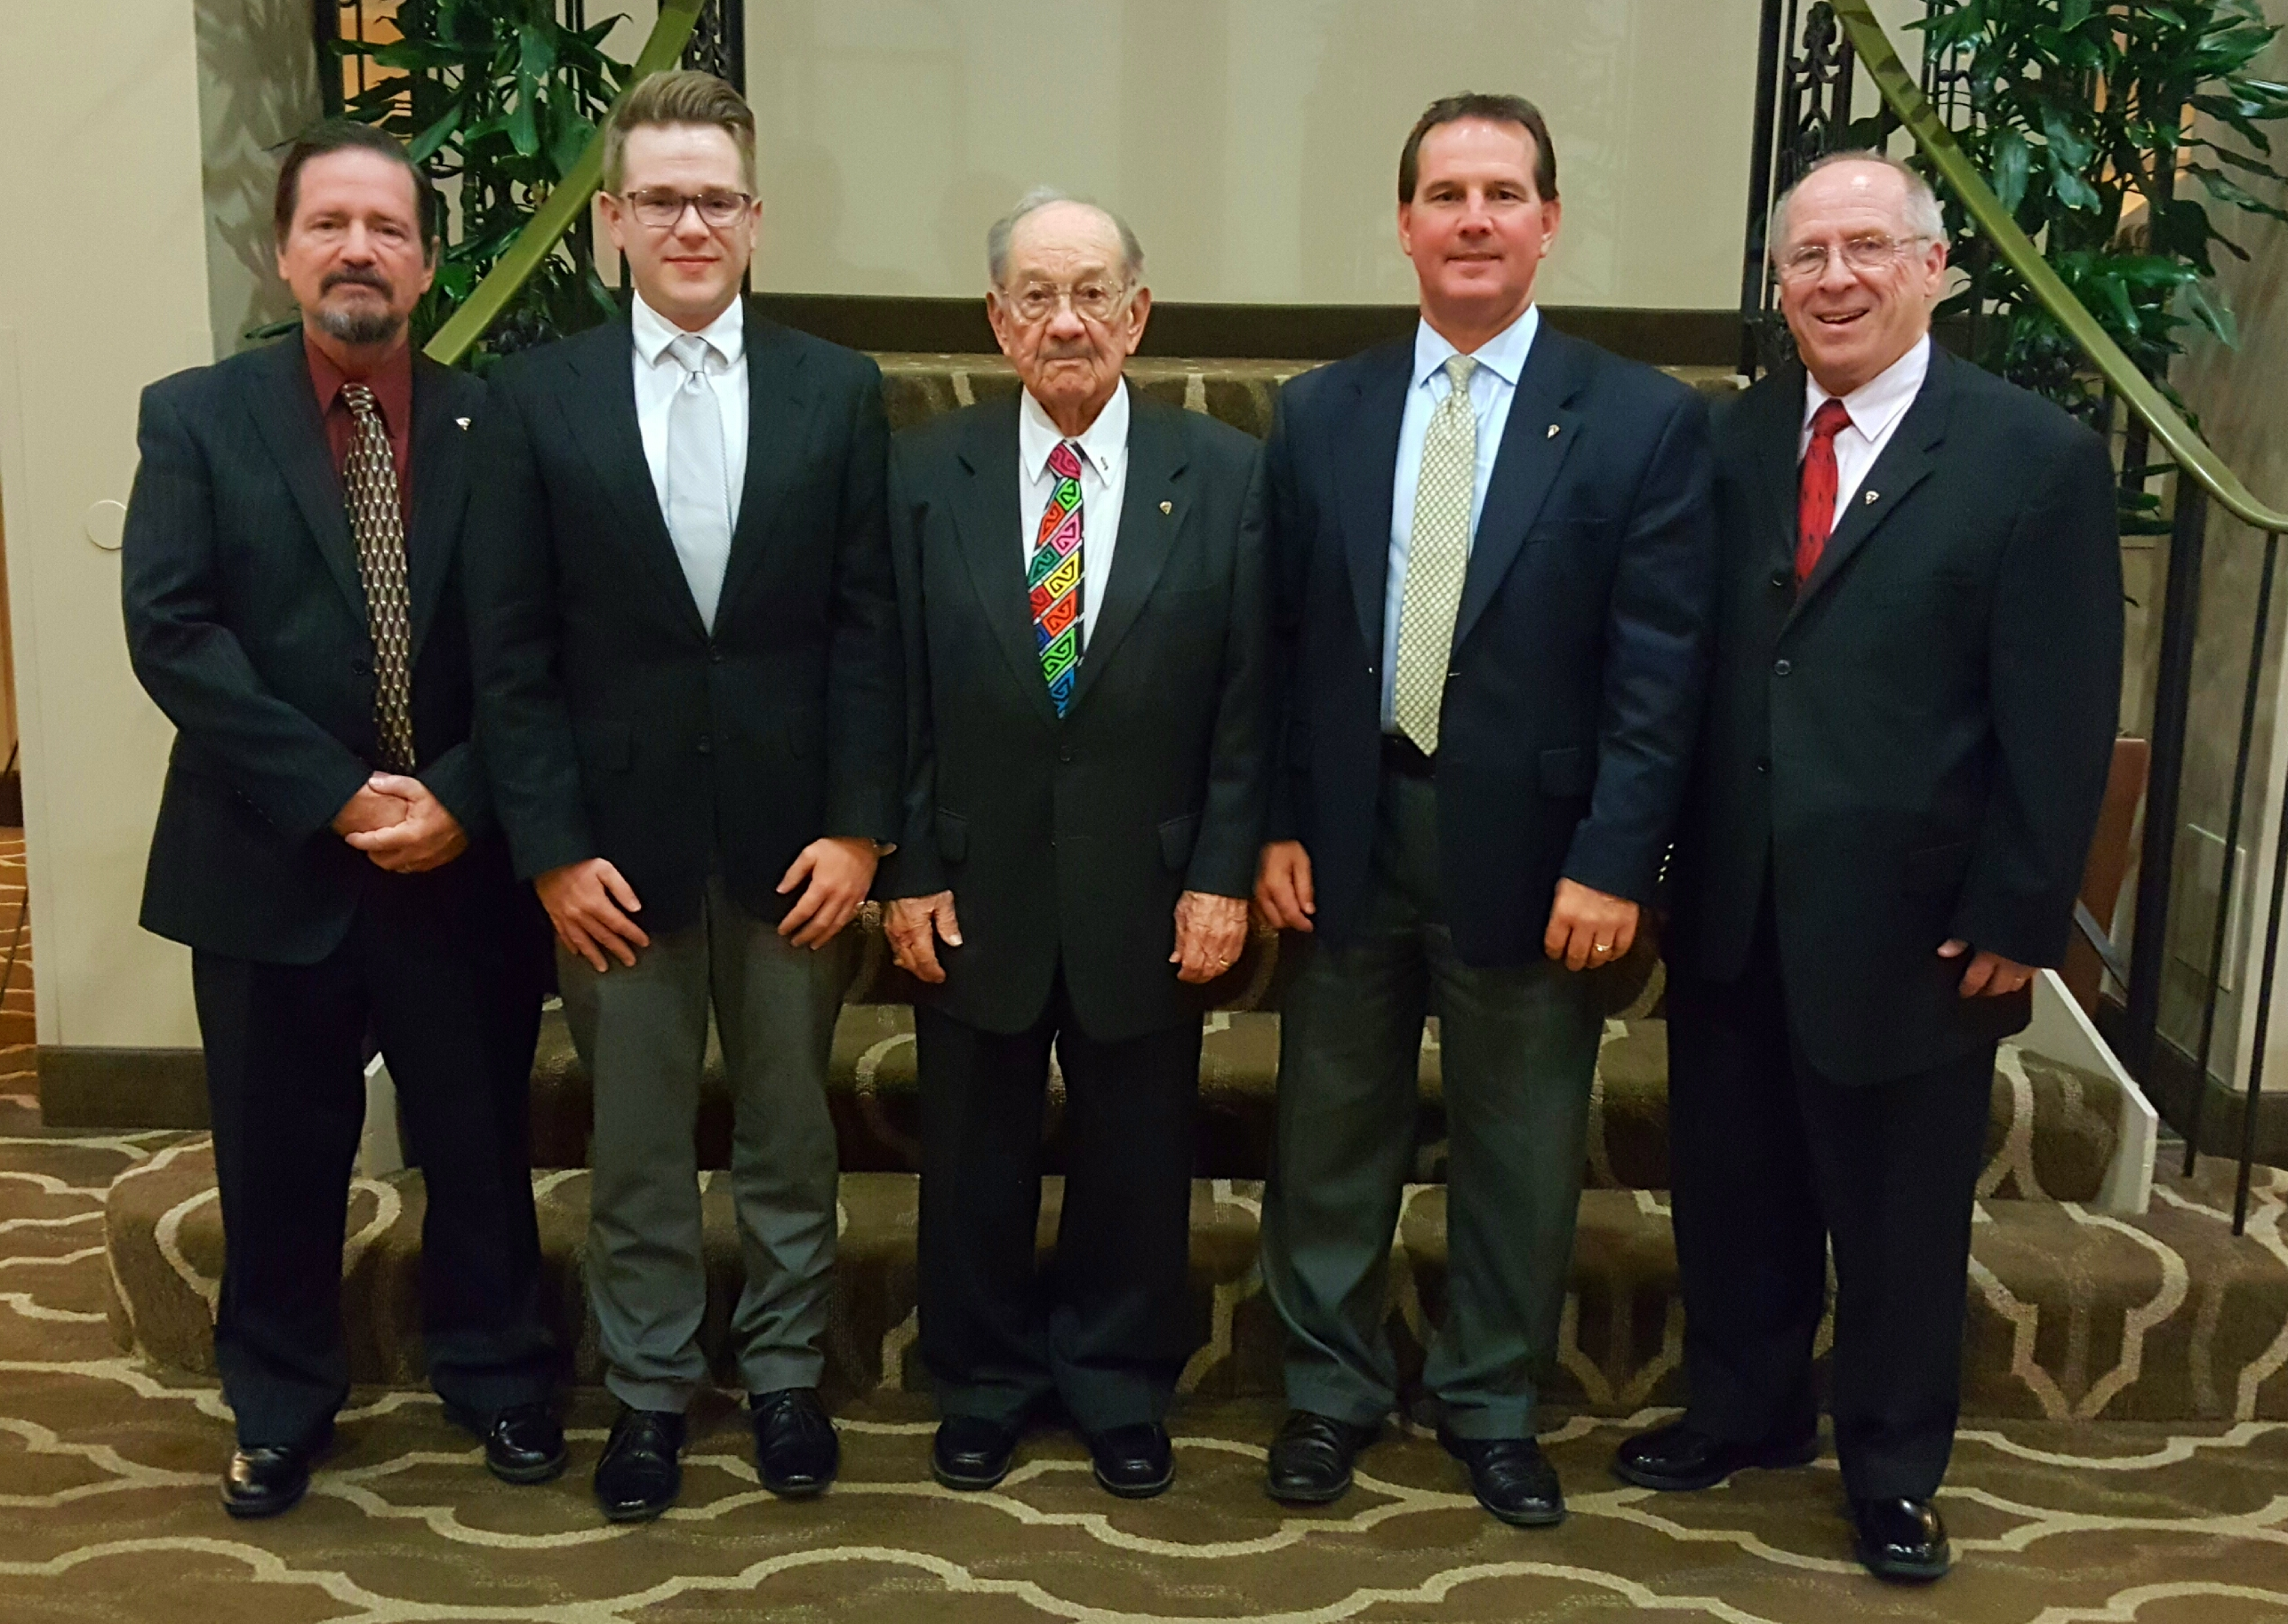 Currently active Brauer Family members include: President James L. Truesdell and Chairman William H. Brauer (seated_ and Vice President Robert G. Brauer and William D. Brauer (standing).